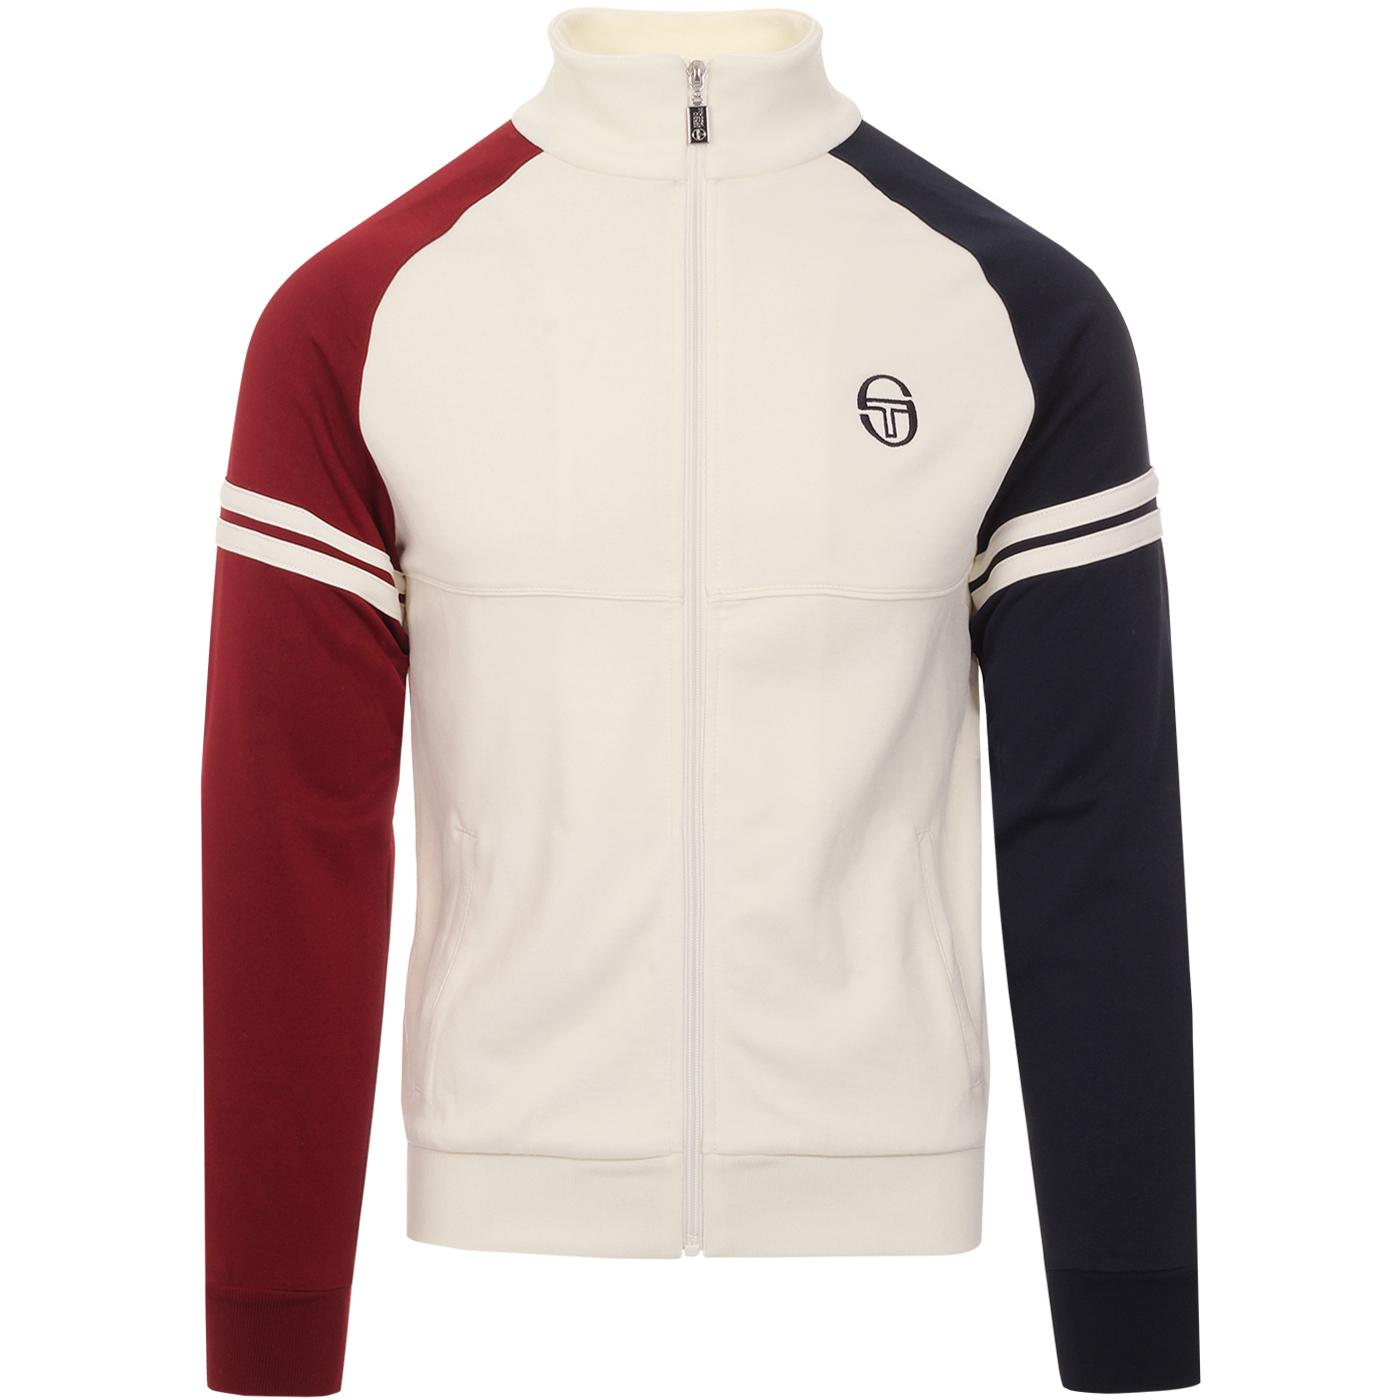 Orion SERGIO TACCHINI Retro 80s Track Top INM